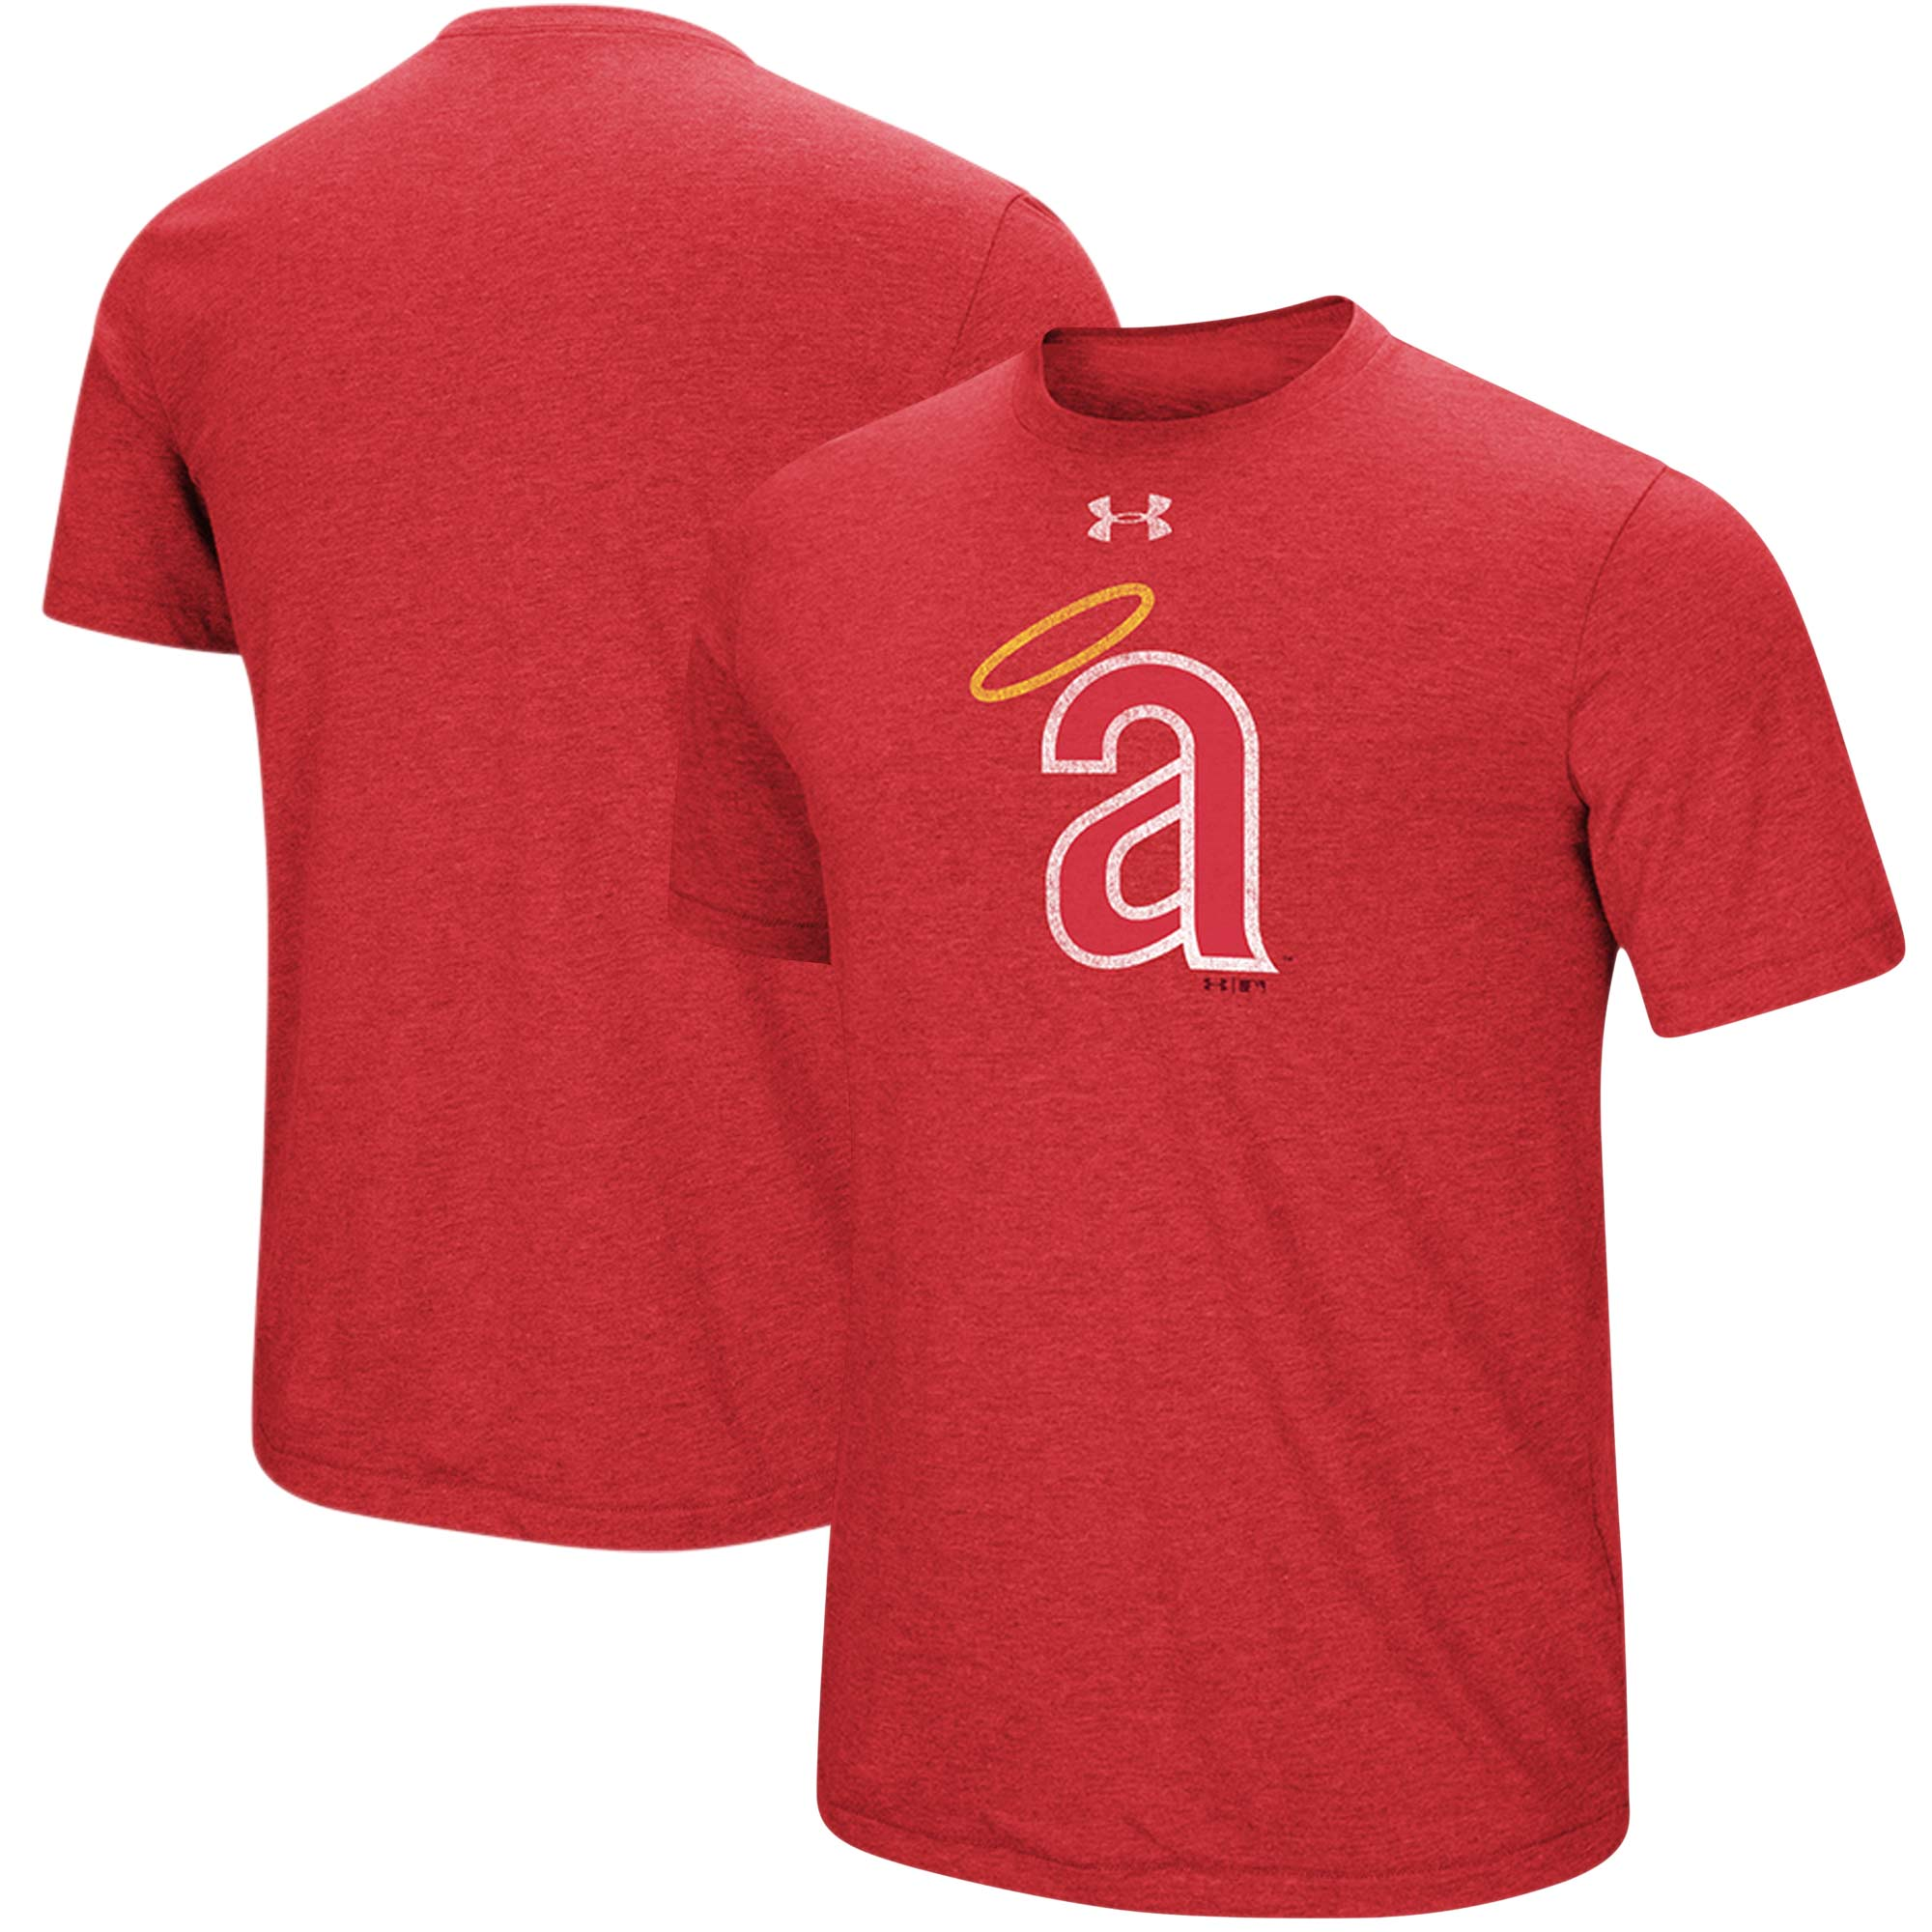 California Angels Under Armour Cooperstown Collection Mark Performance Tri-Blend T-Shirt - Heathered Red